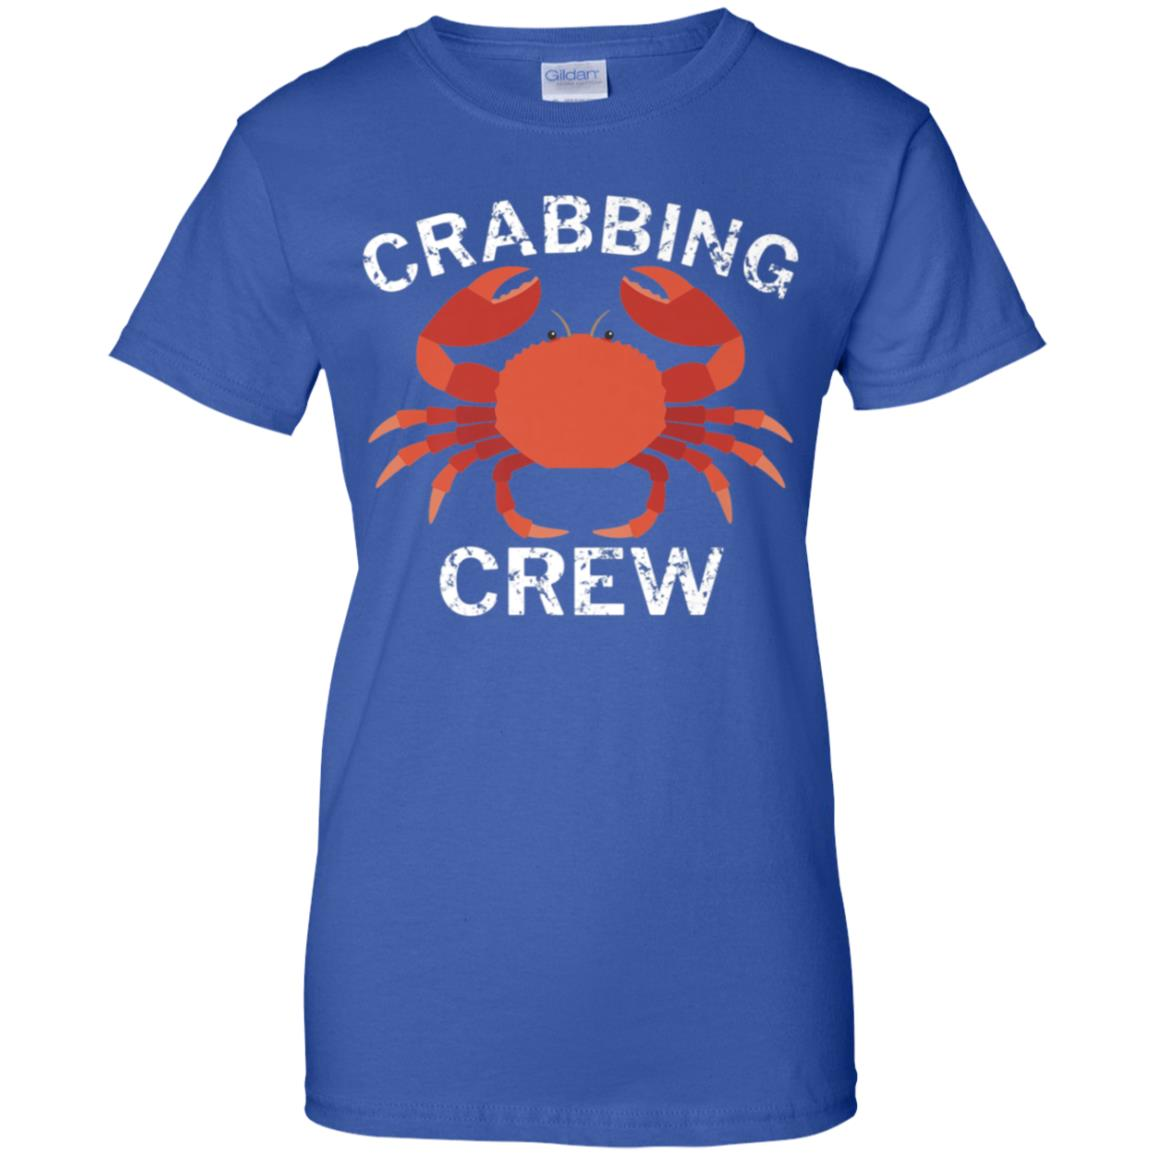 ad945d540 Awesome crabbing crew funny crab fishing t shirt - 99promocode